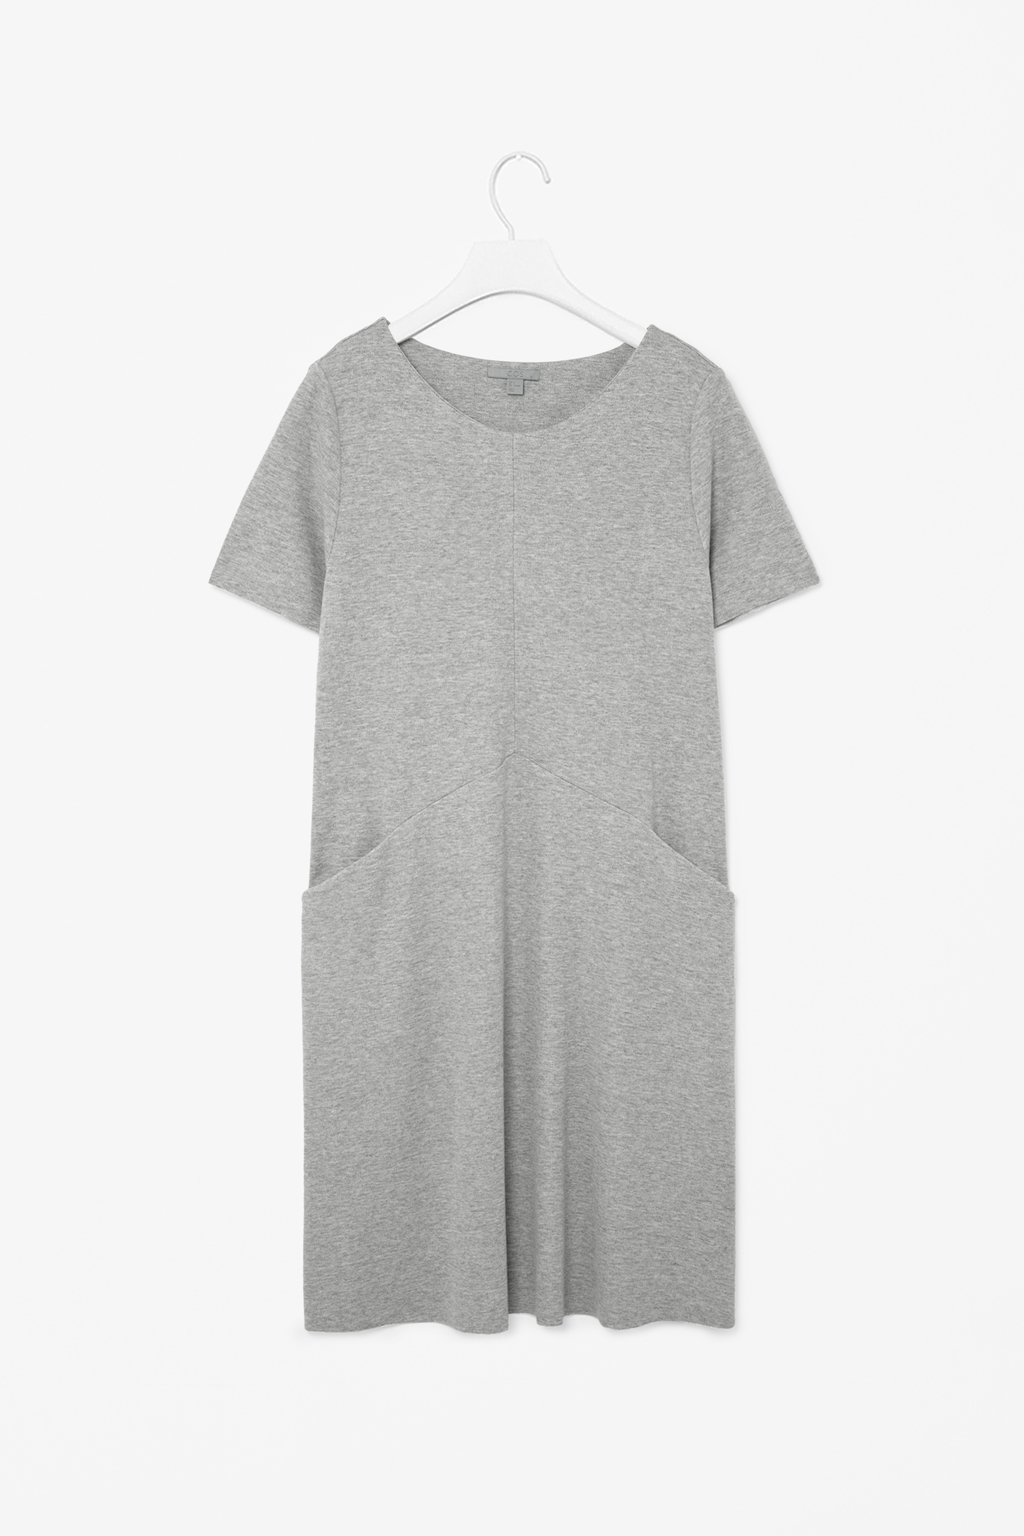 A Line Jersey Dress - style: t-shirt; neckline: round neck; fit: loose; pattern: plain; hip detail: front pockets at hip; predominant colour: mid grey; occasions: casual, evening, holiday, creative work; length: just above the knee; fibres: viscose/rayon - stretch; sleeve length: short sleeve; sleeve style: standard; pattern type: fabric; texture group: jersey - stretchy/drapey; season: s/s 2014